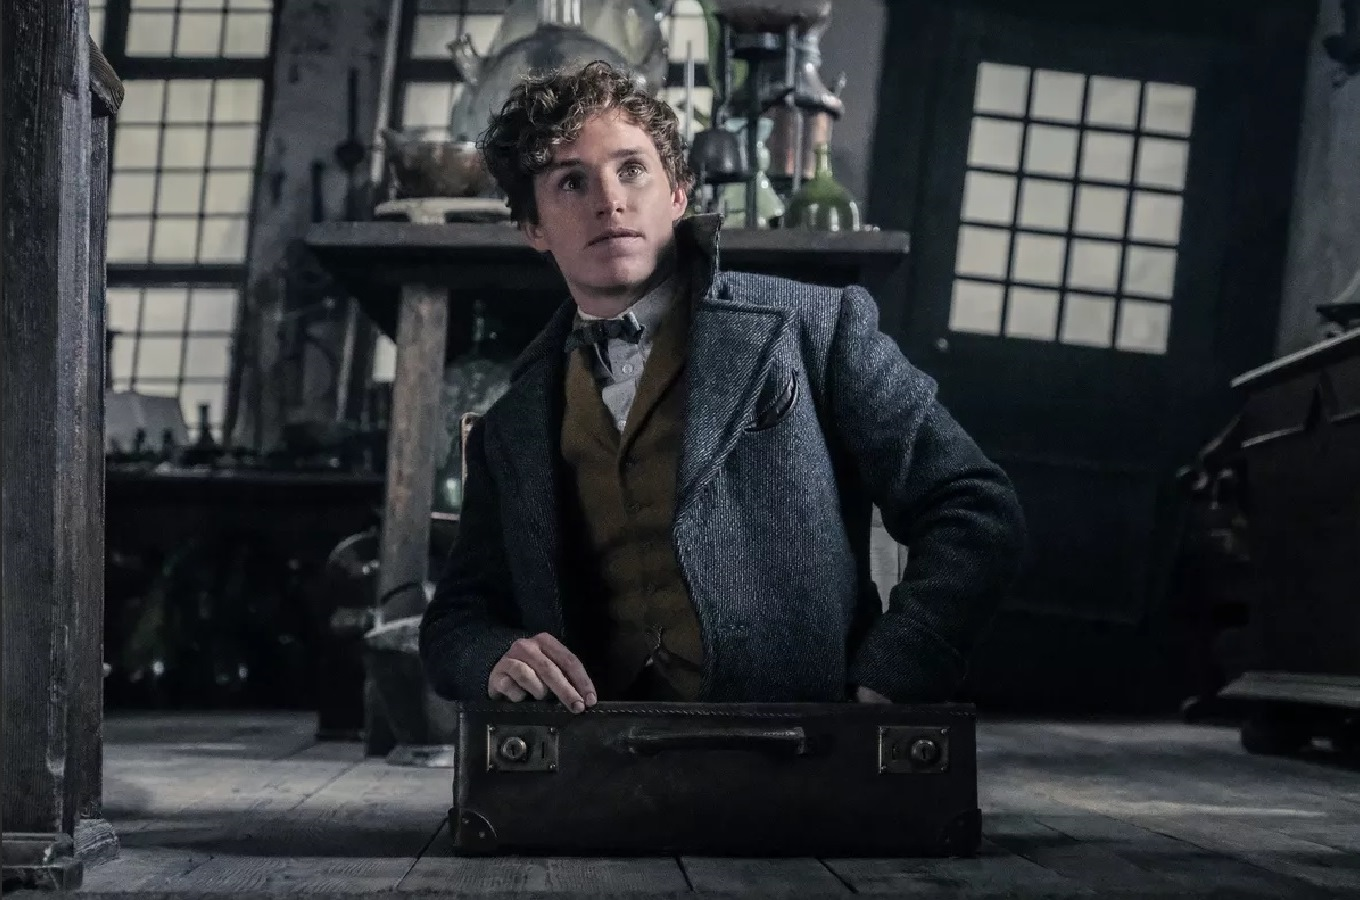 Eddie Redmayne back as New Scamander in Fantastic Beasts: The Crimes of Grindelwald (2018)